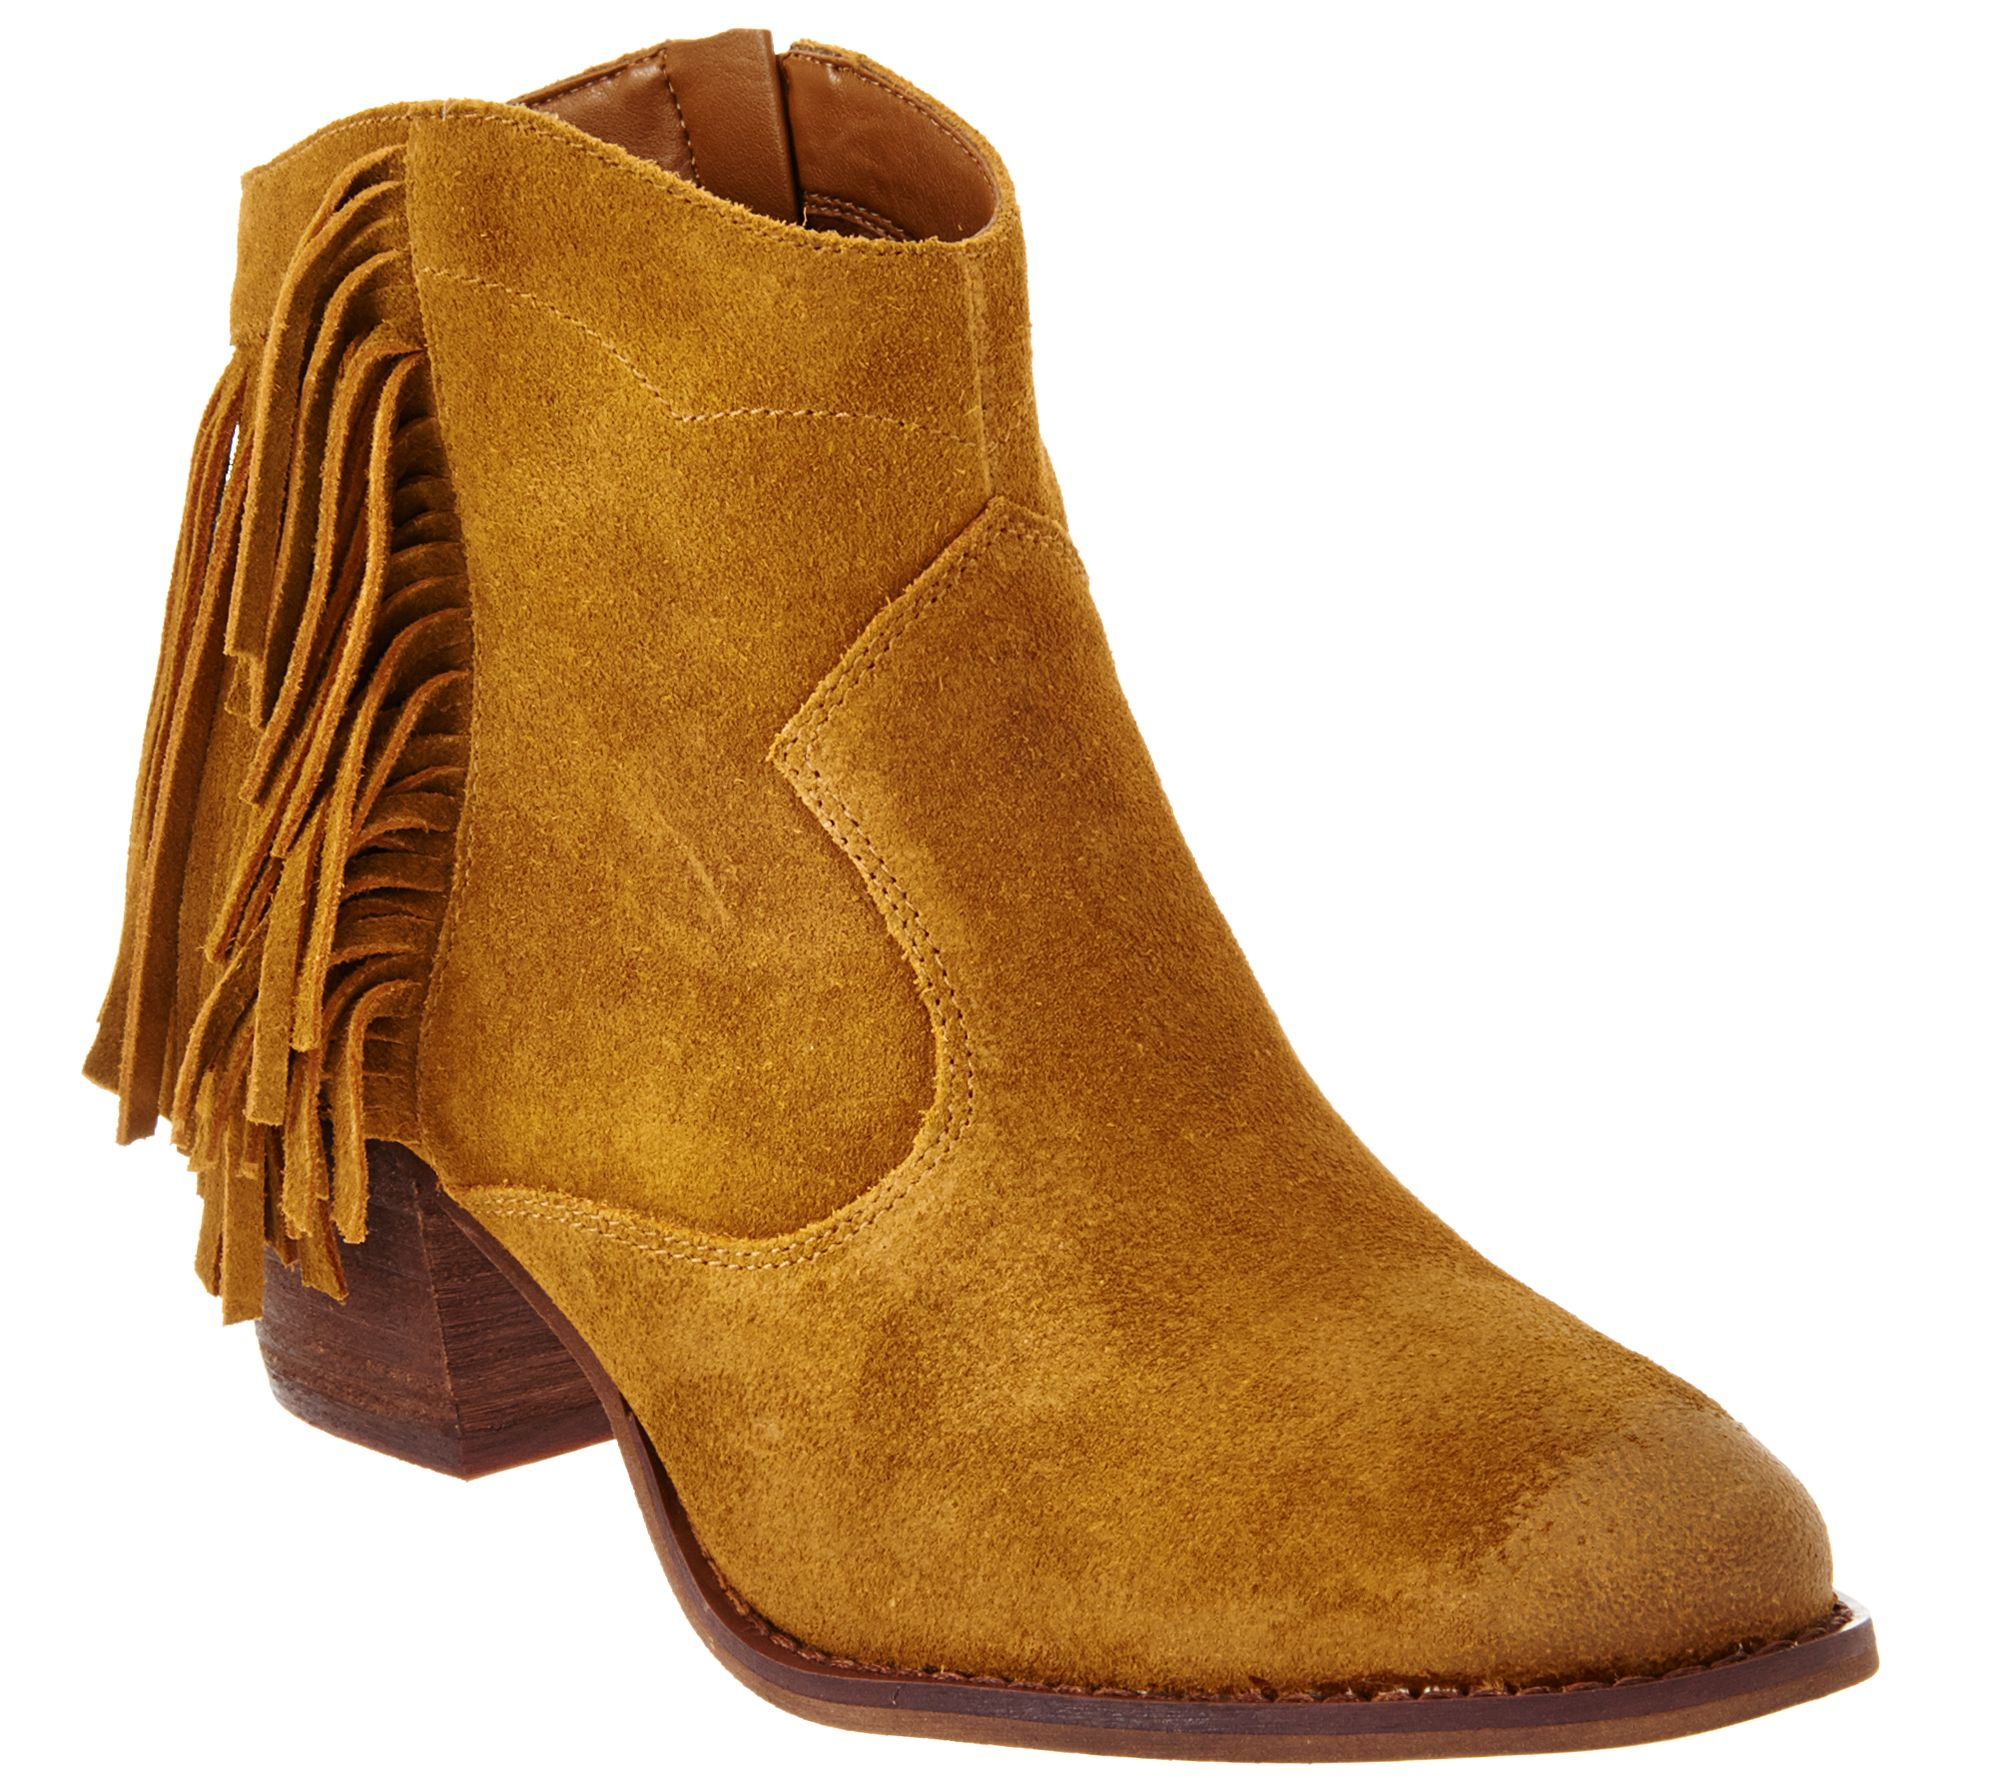 Marc Fisher Suede Fringe Ankle Boots - Sade - Page 1 — QVC.com